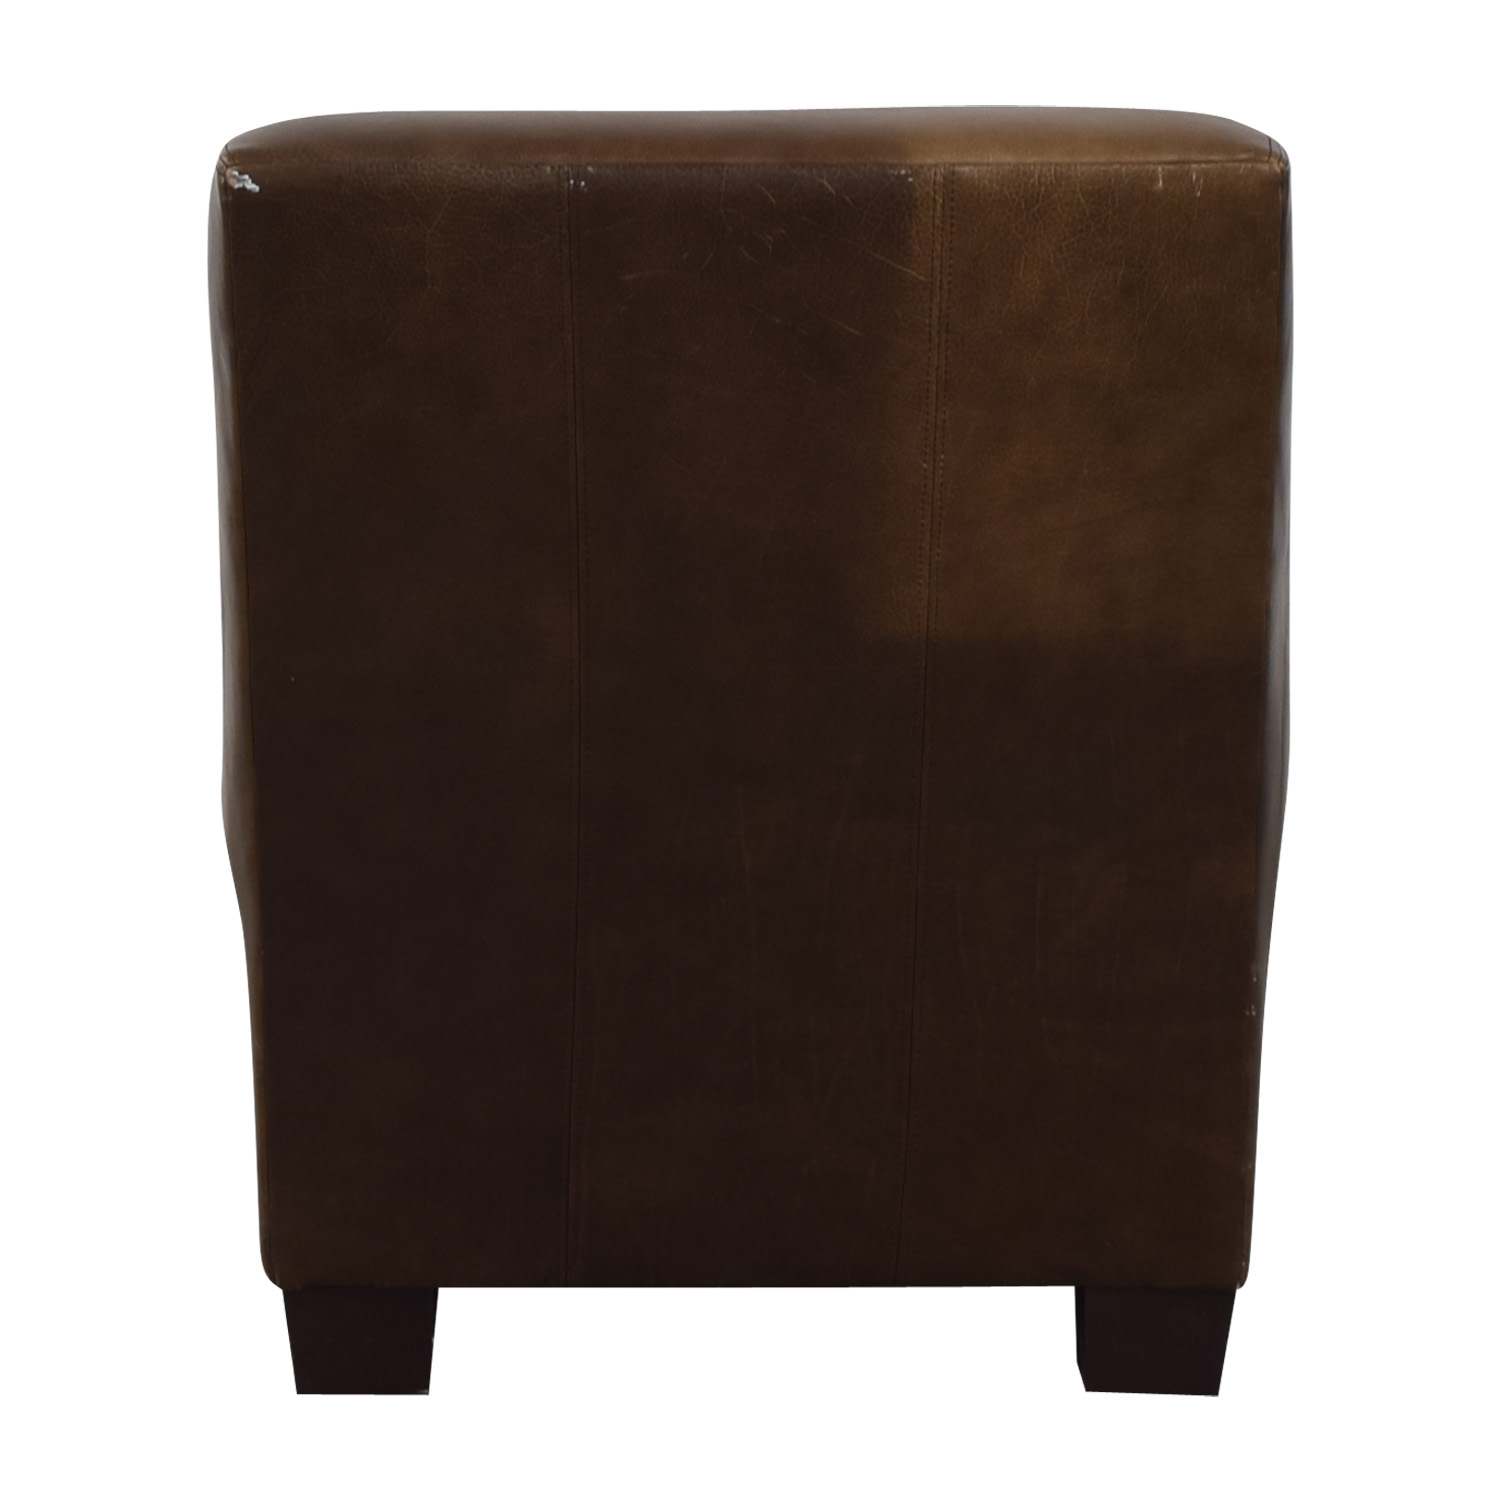 Pottery Barn Pottery Barn Leather Lounge Chair brown